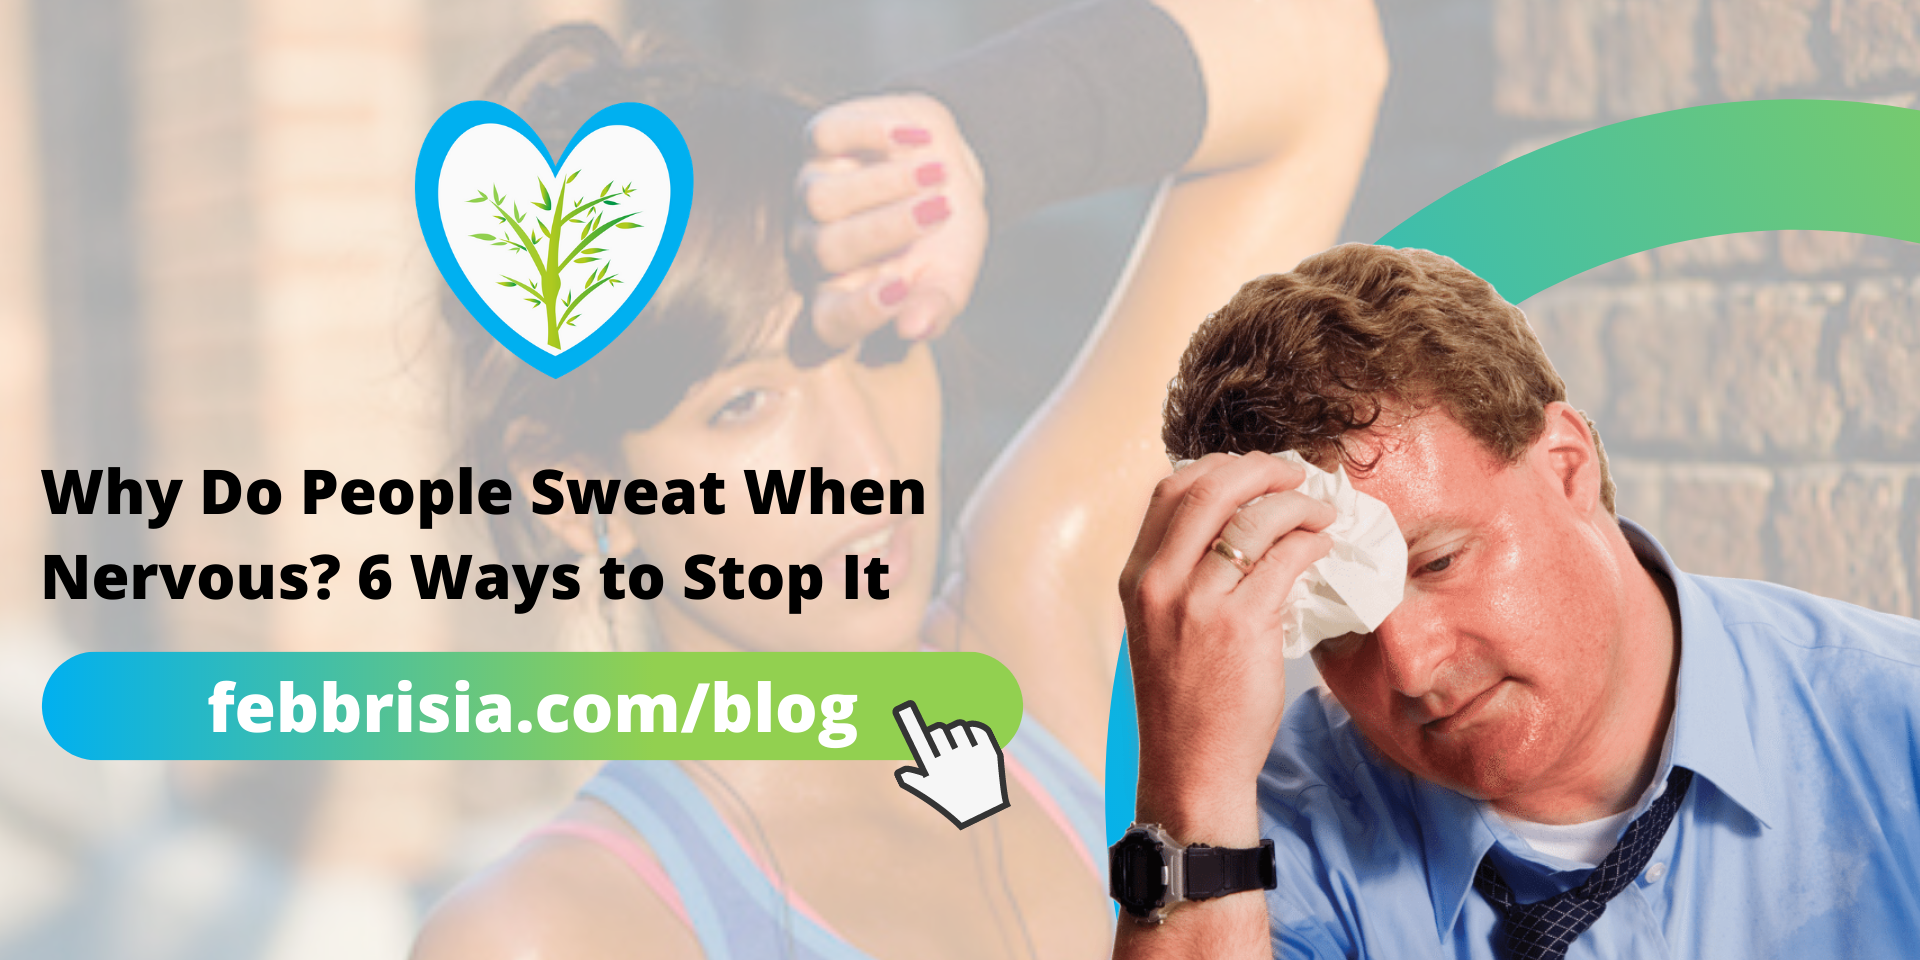 Why Do People Sweat When Nervous? 6 Ways to Stop It